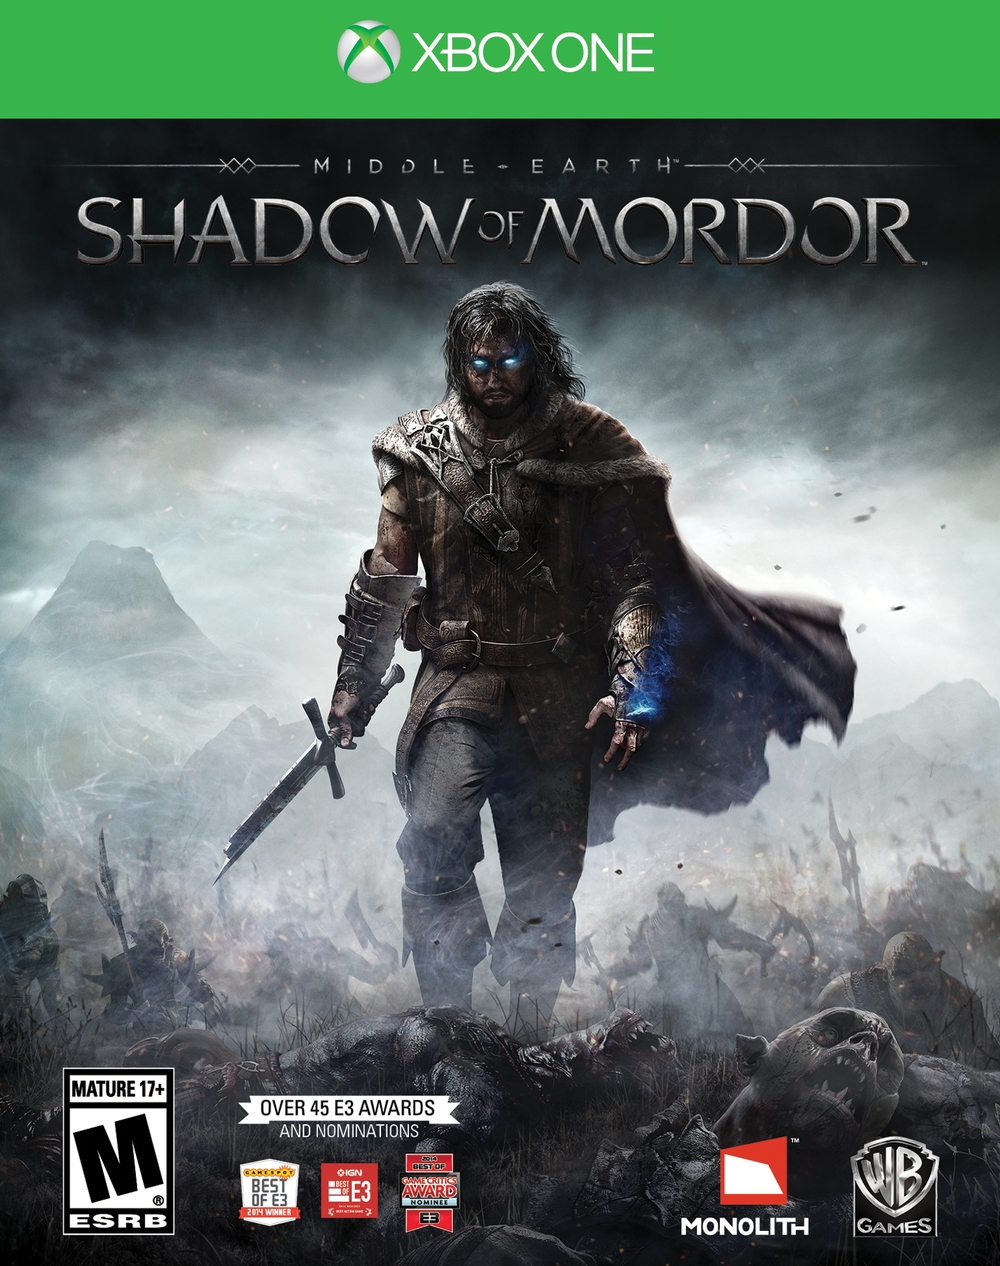 middle-earth-shadow-of-mordor-us-esrb-xonejpg-0d2c6b.jpg